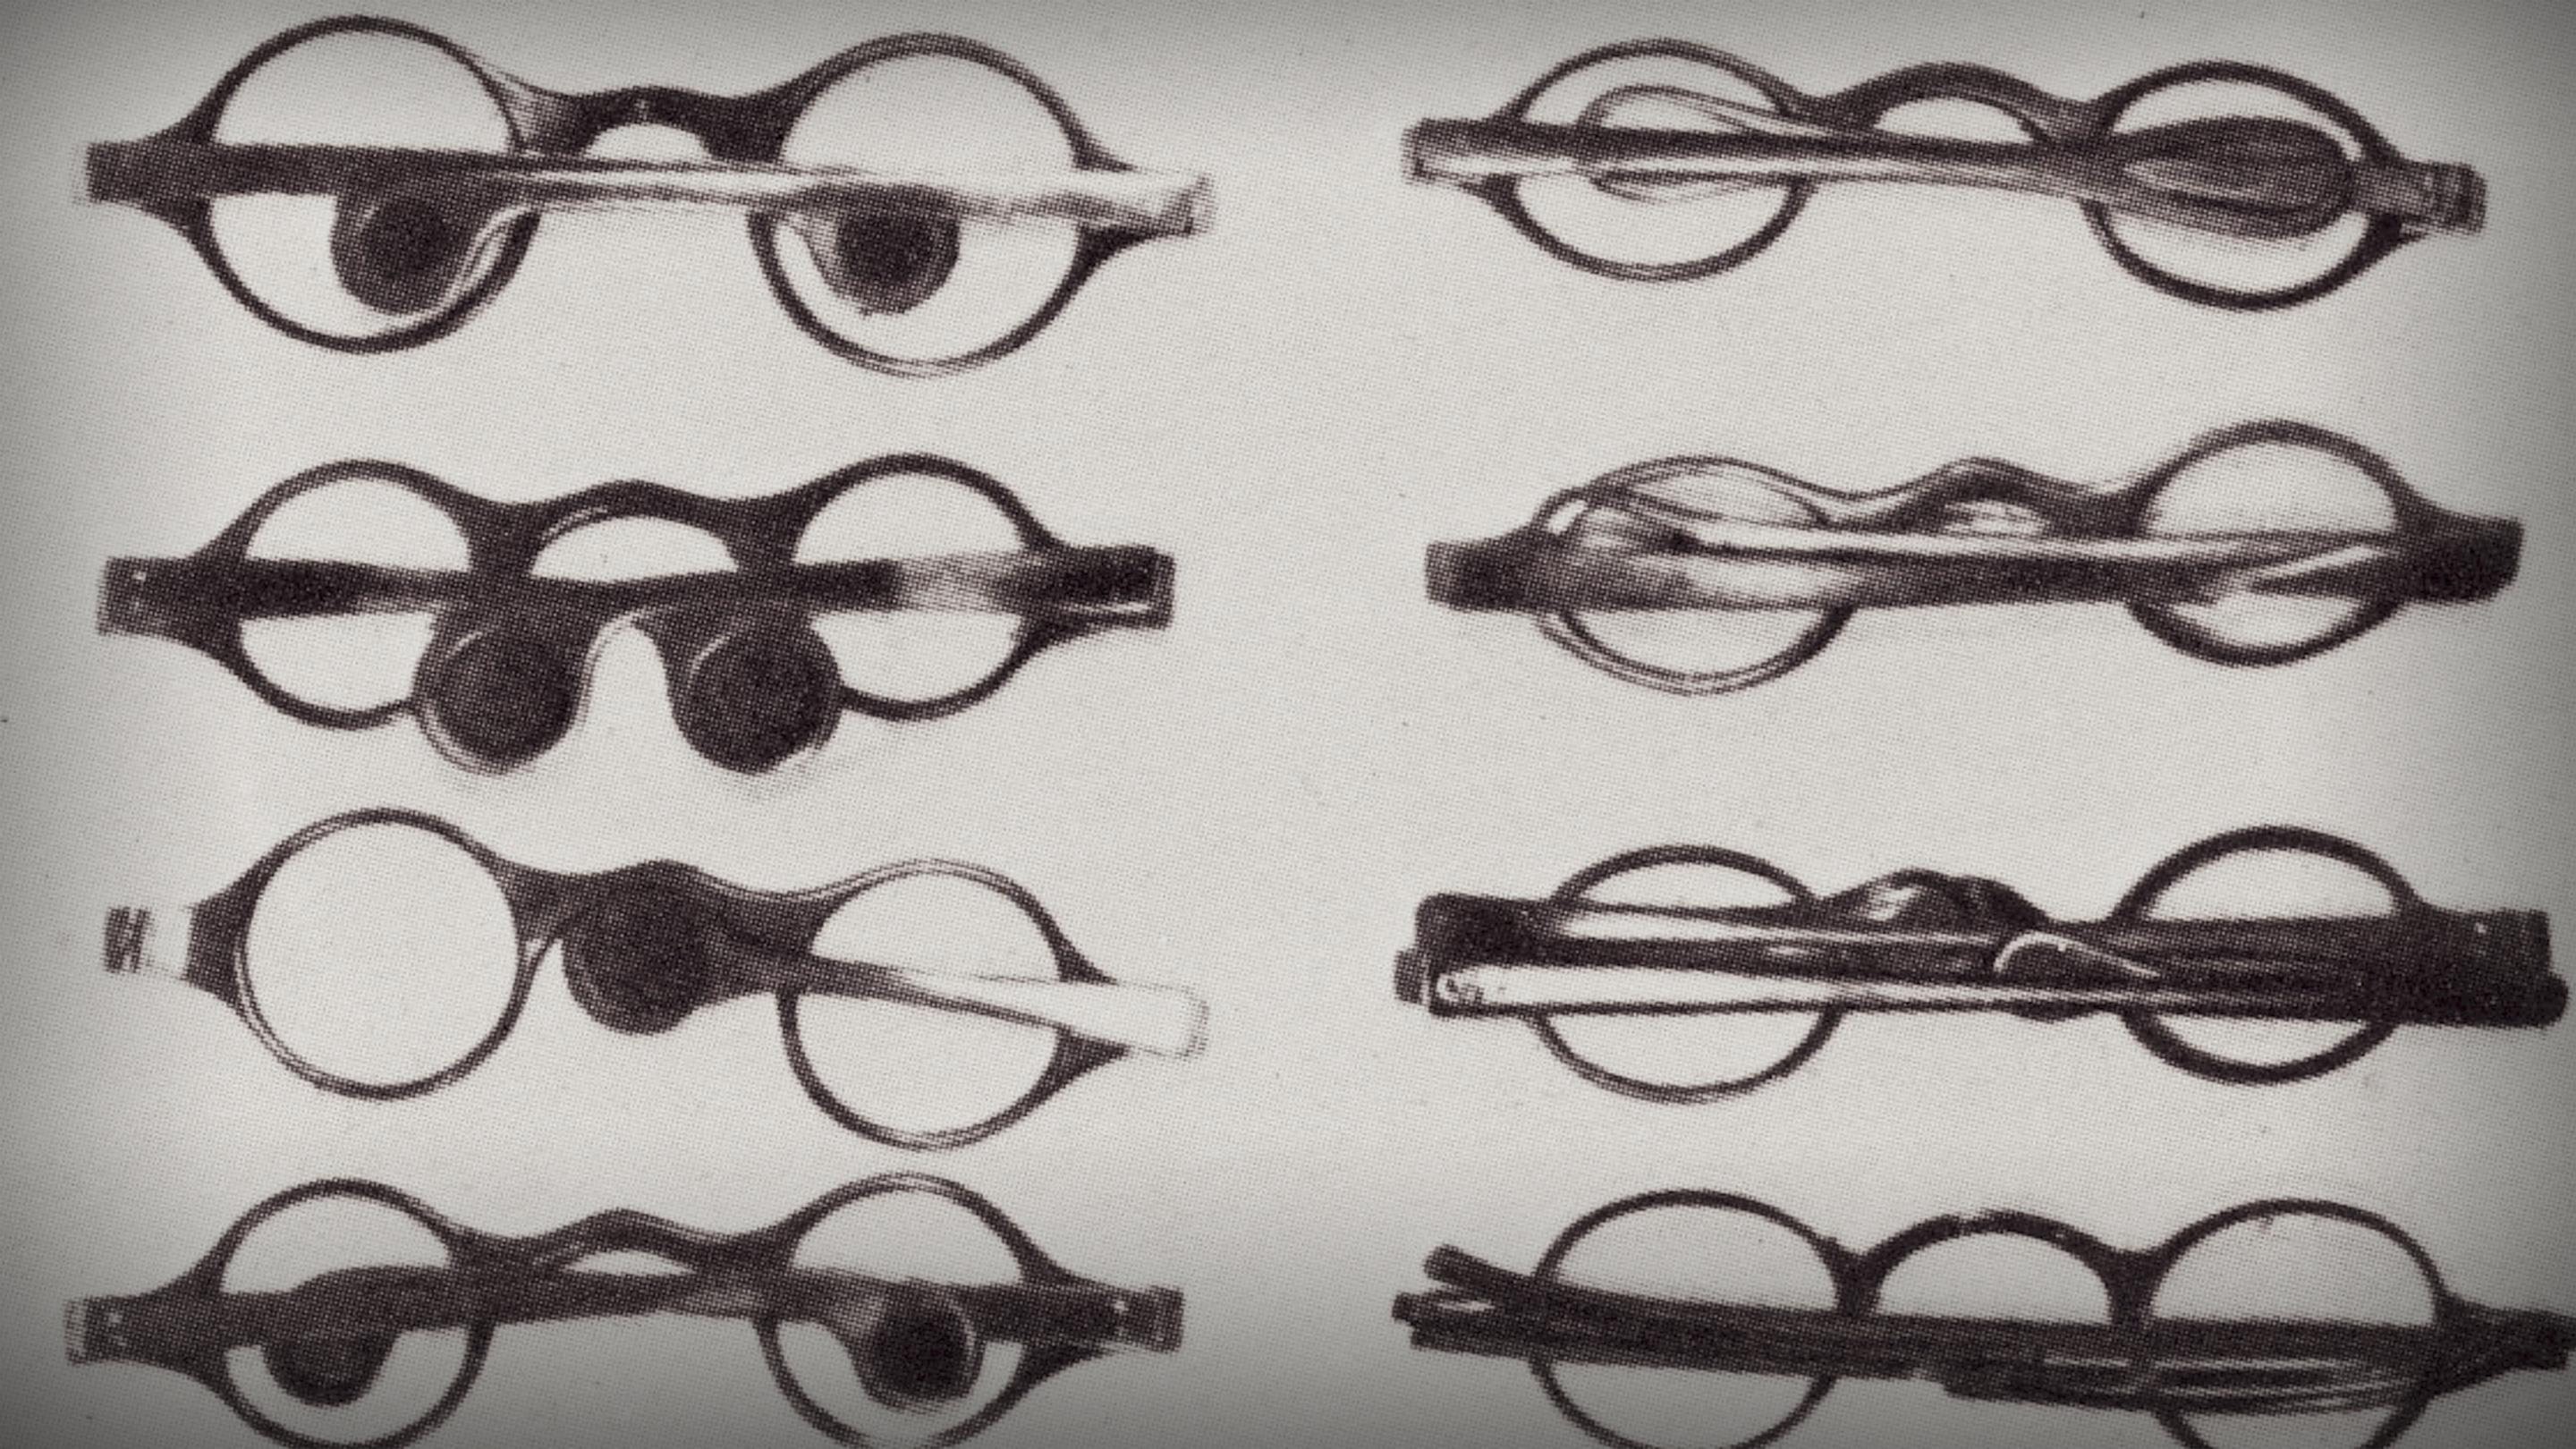 The function and fashion of eyeglasses | Debbie Millman